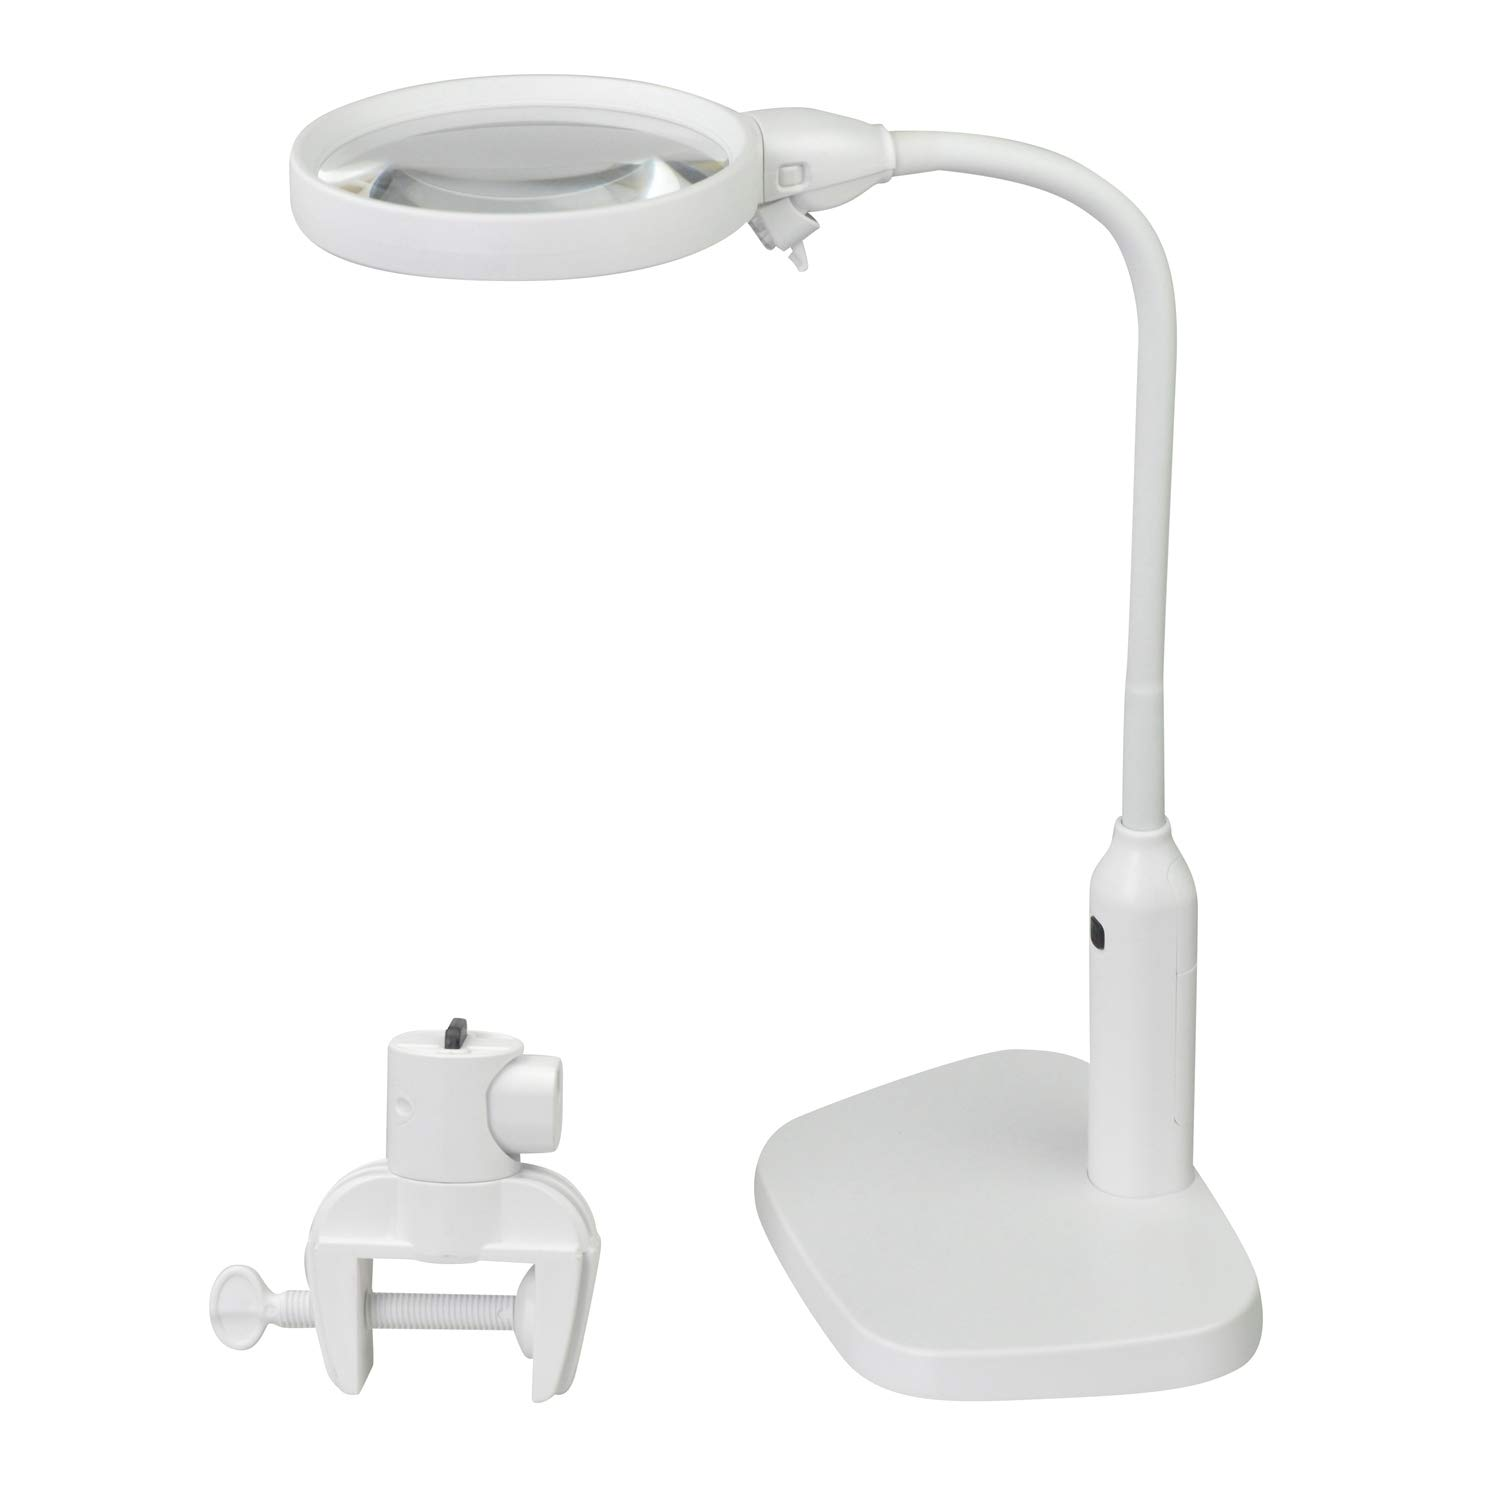 YOCTOSUN 2x 5x LED Magnifying Lamp – 2 in 1 Clip-on & Desktop Magnifying Glass with 6 Bright LED Lights and Flexible Gooseneck - Magnifying Glass with Light for Reading,Working and Hobby (USB Lighted)